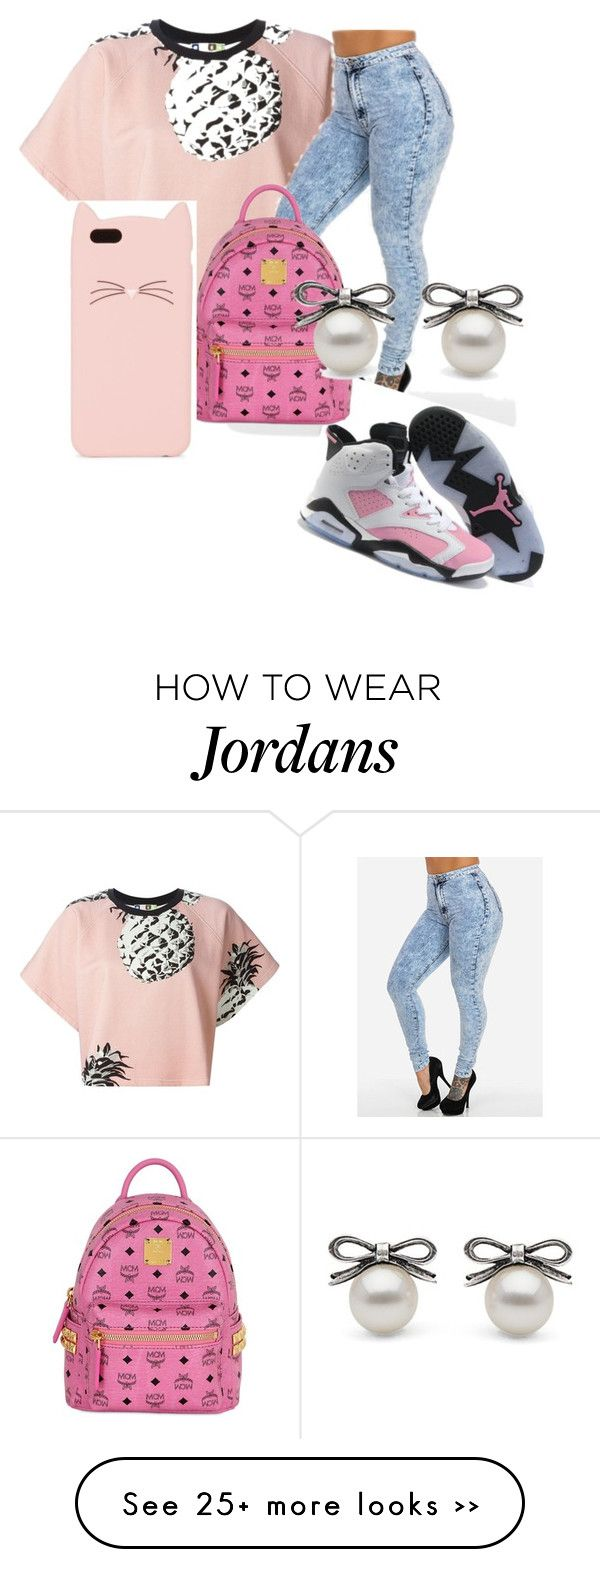 """Untitled #80"" by cecilyharris on Polyvore"